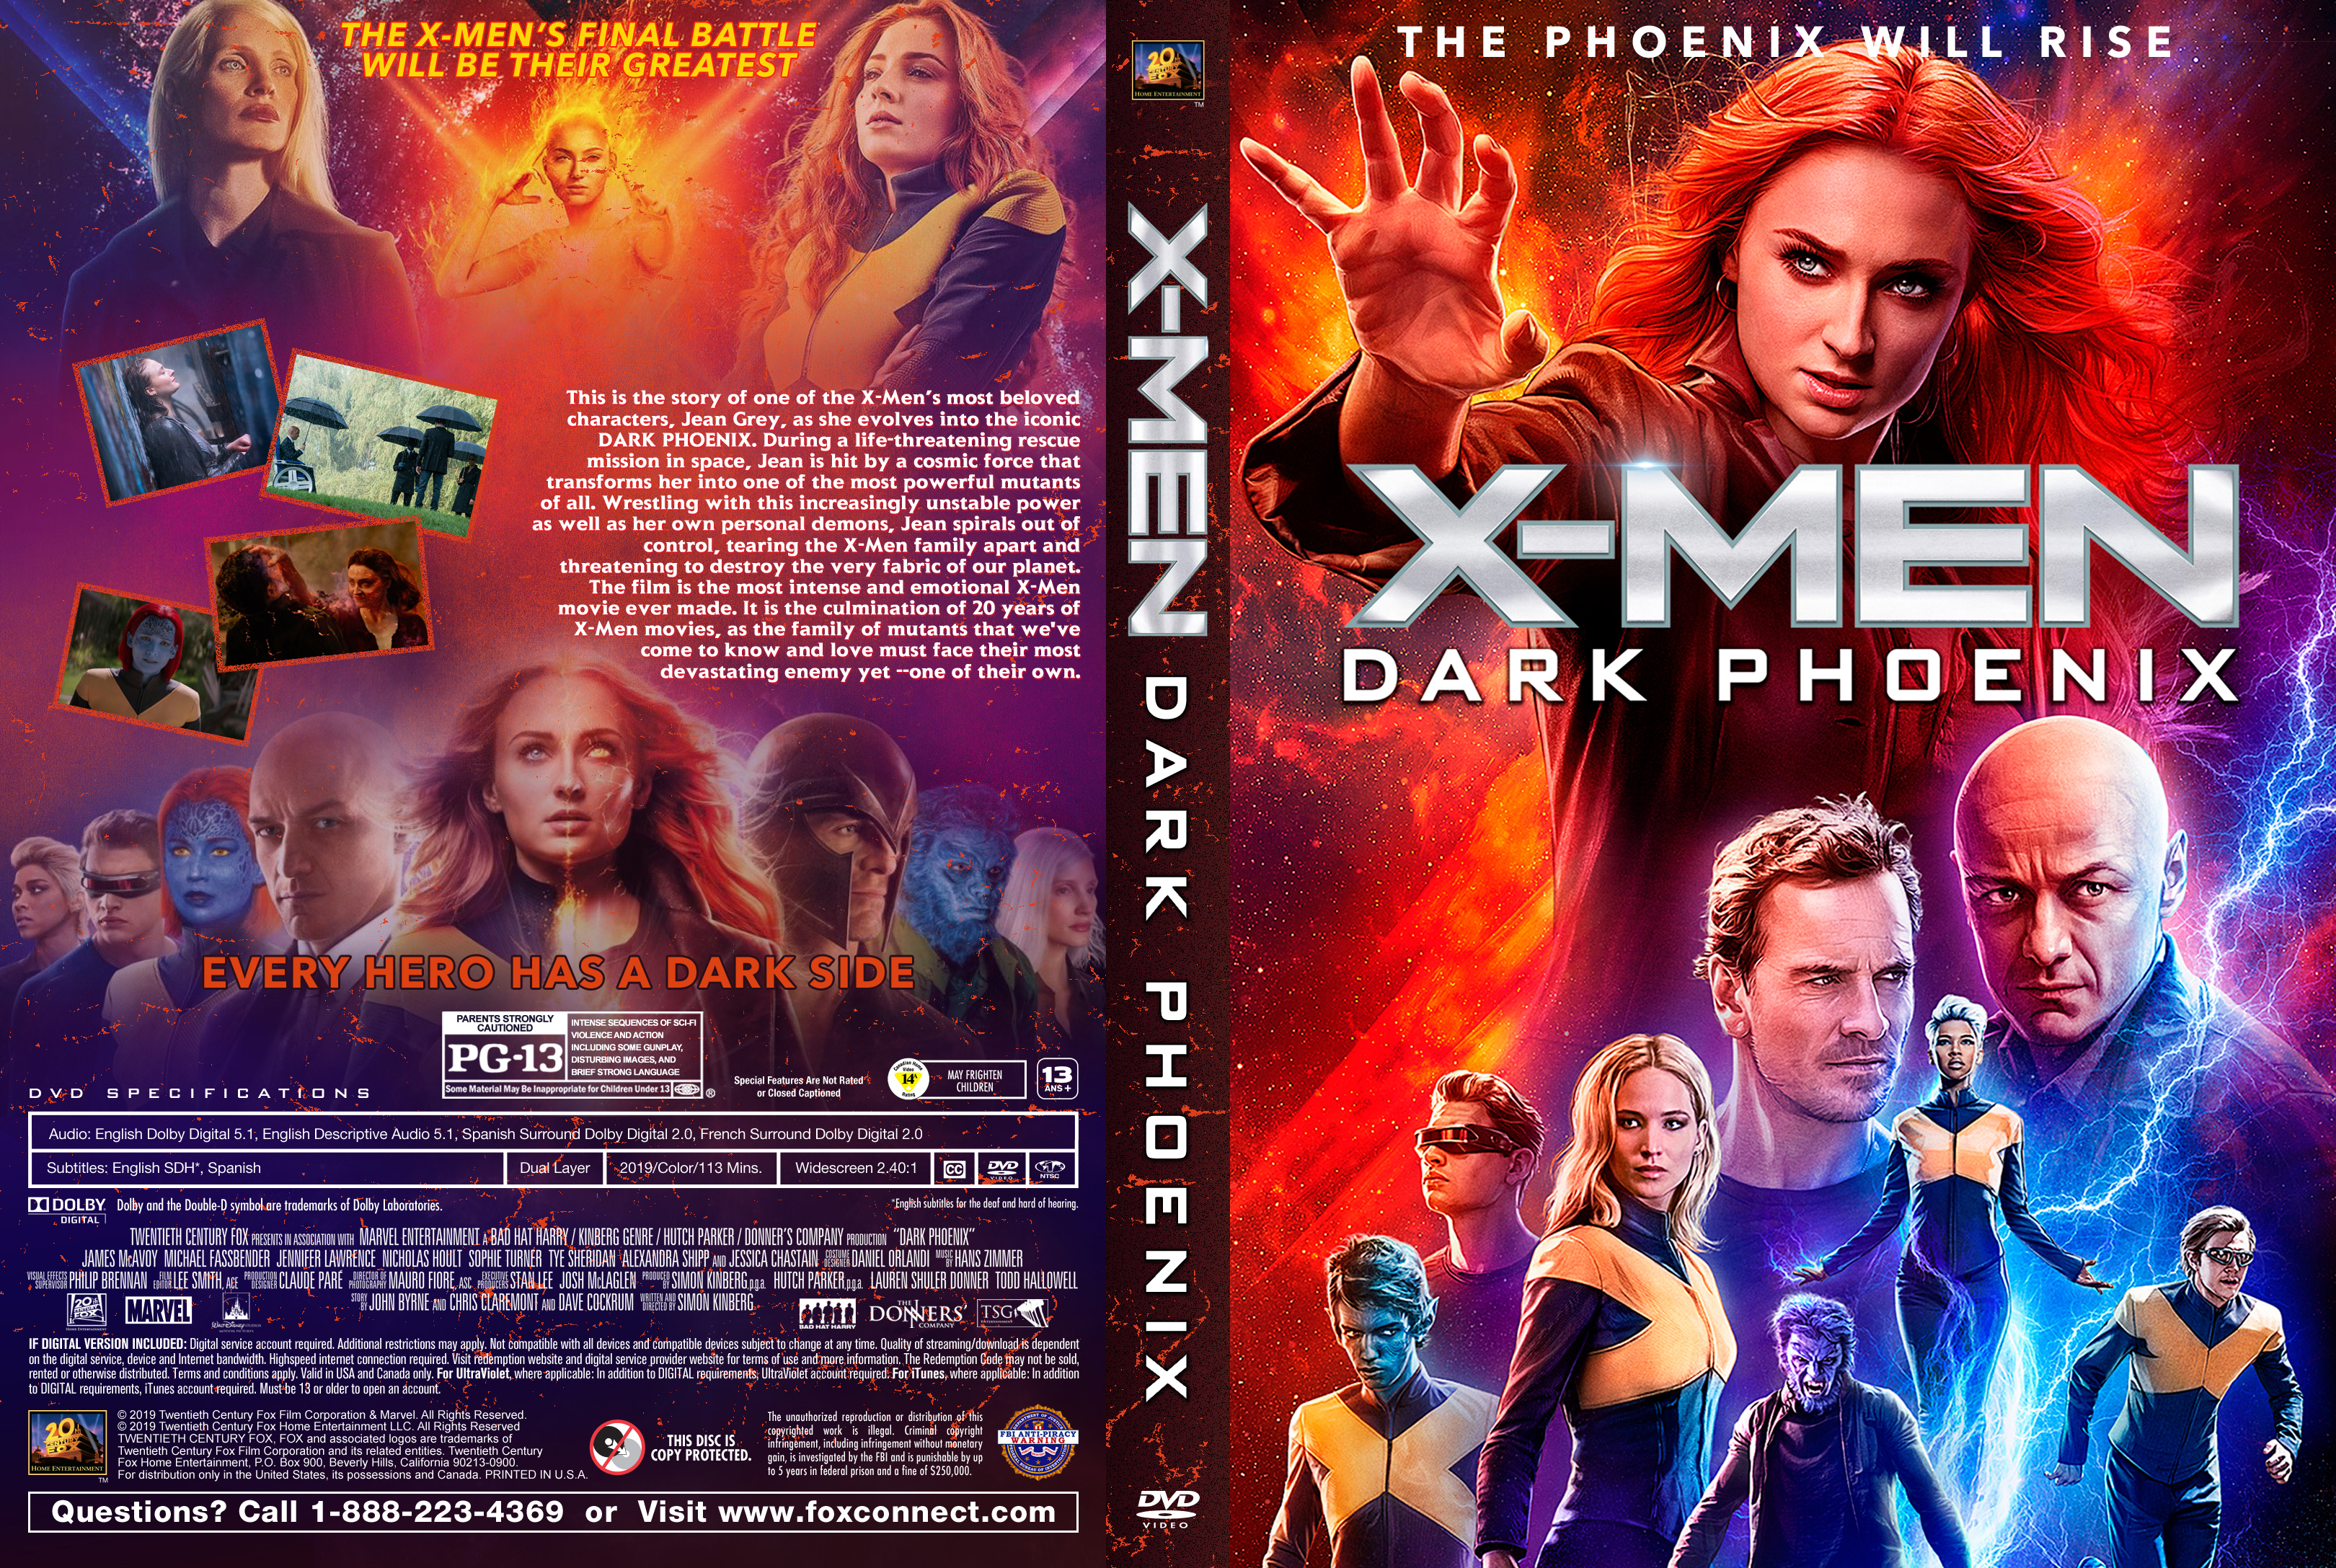 X Men Dark Phoenix 2019 Front Dvd Covers Cover Century Over 500 000 Album Art Covers For Free